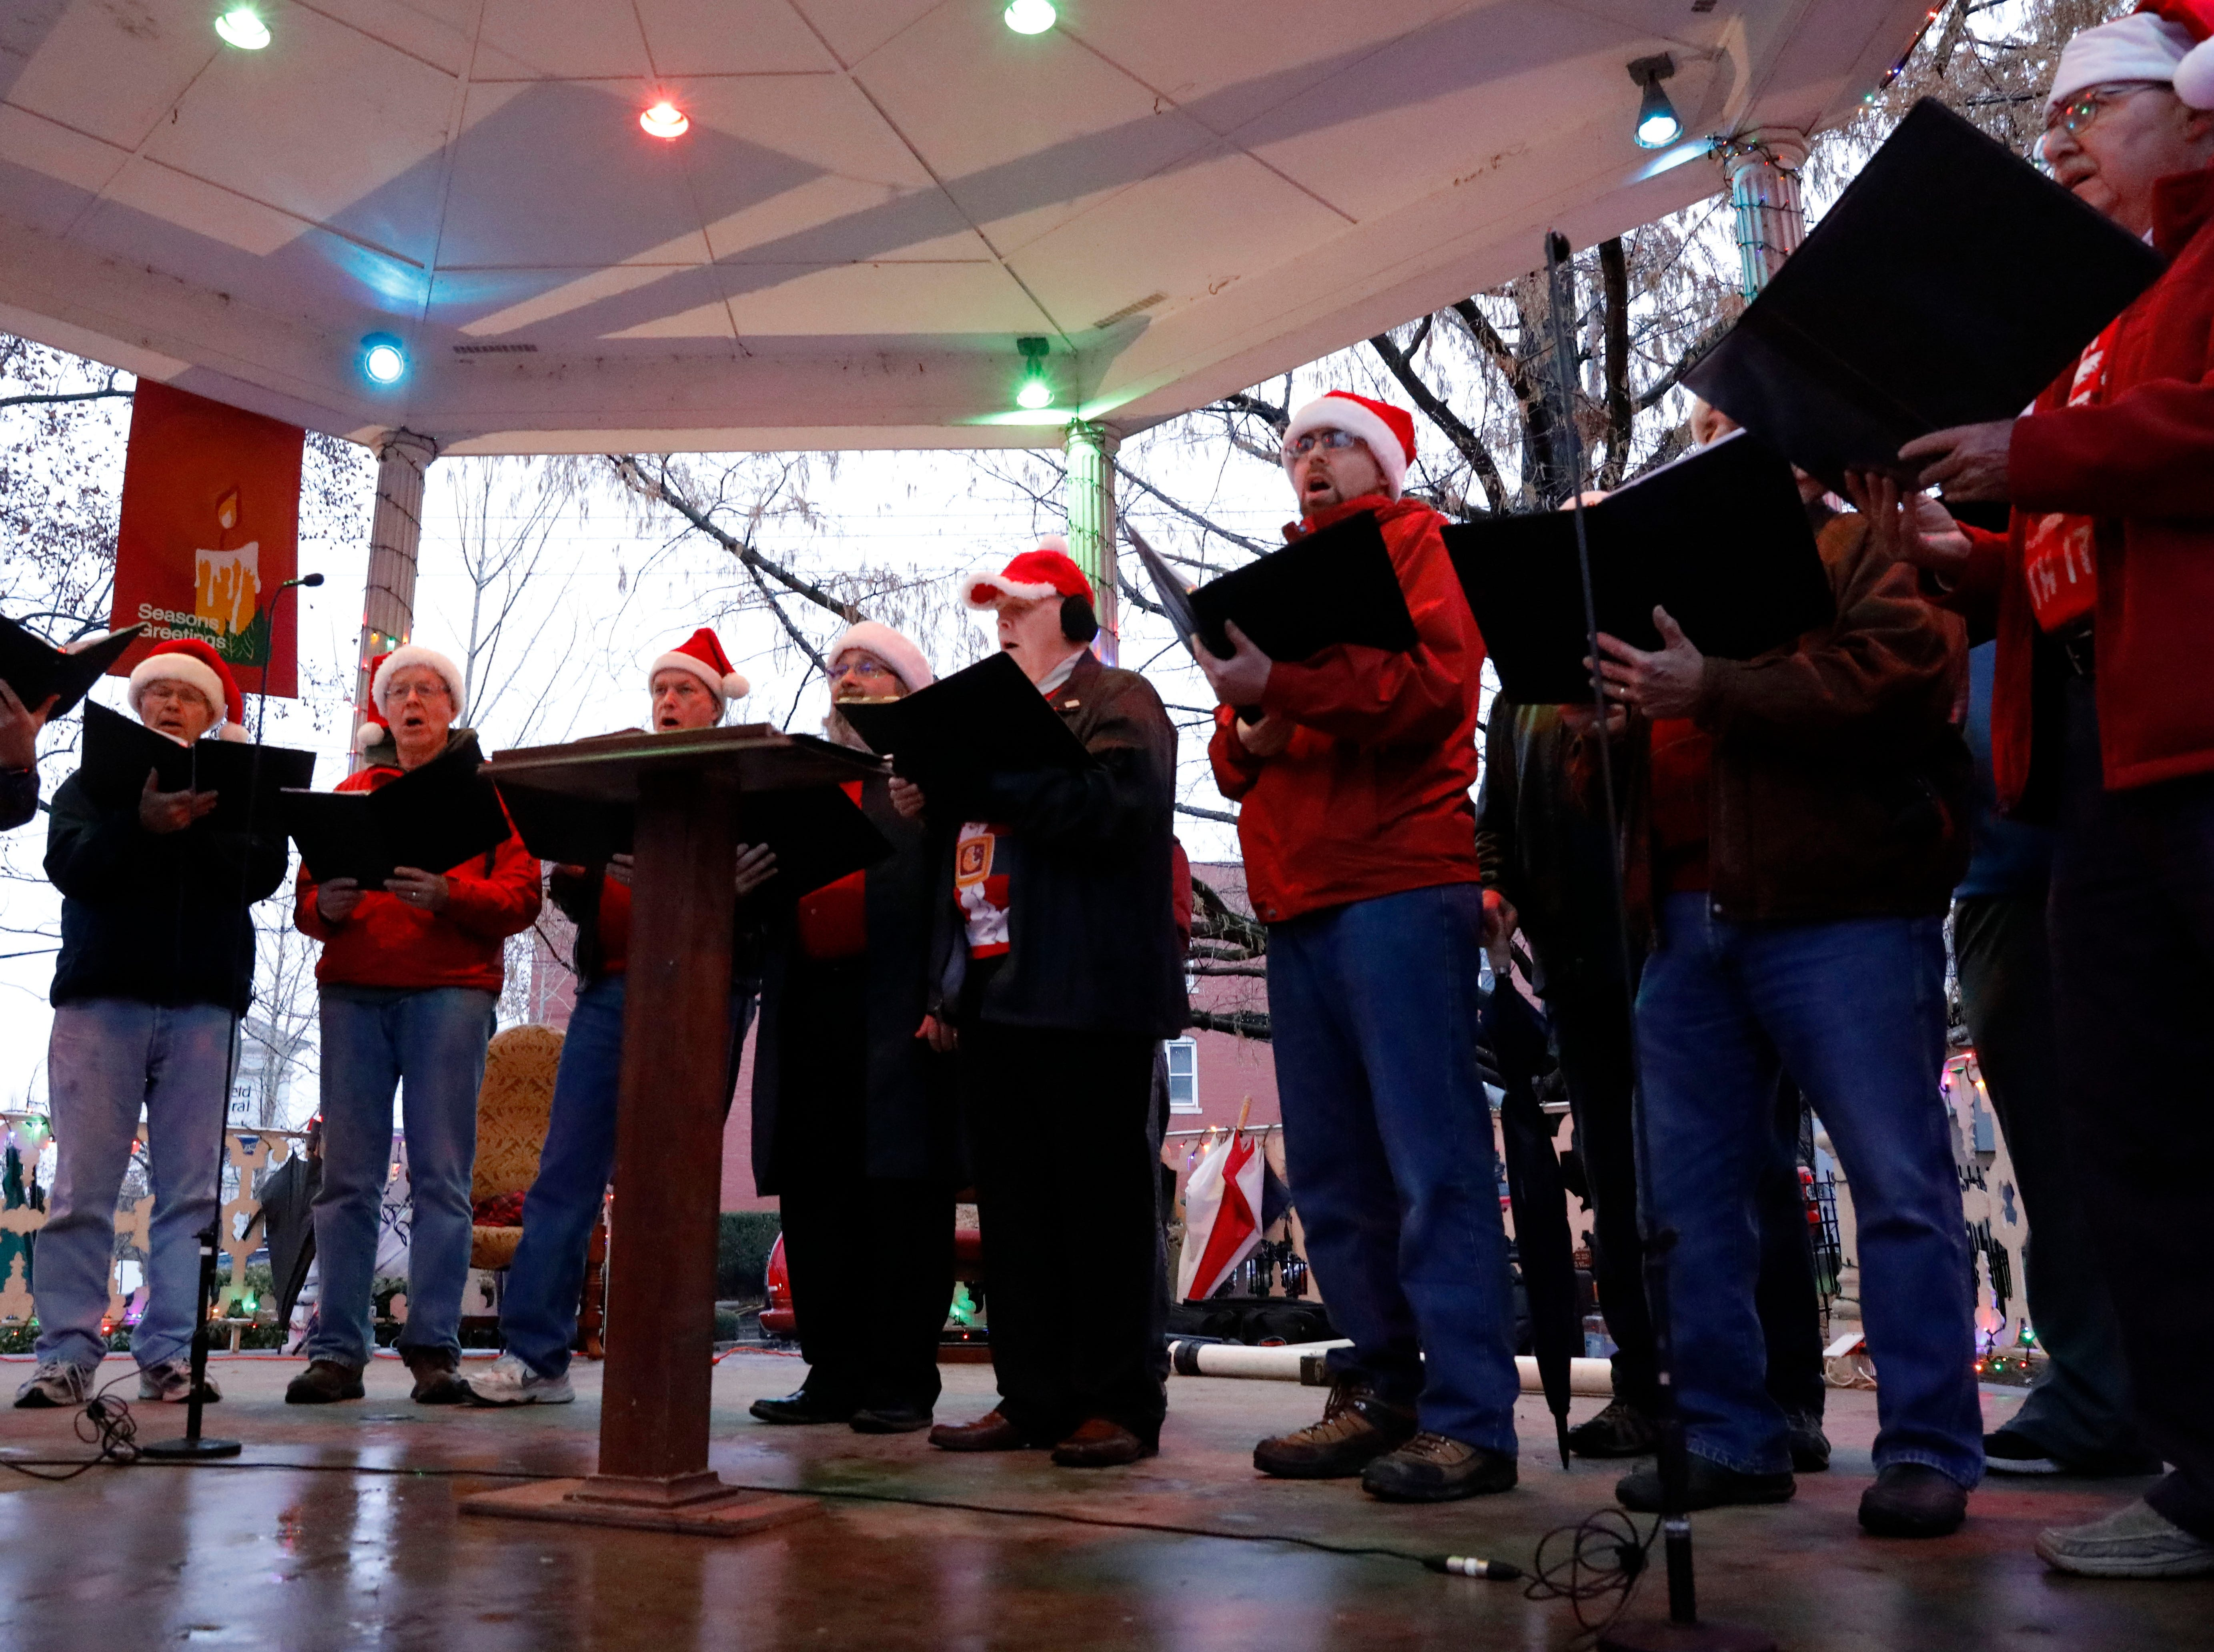 Members of the Lancaster Men's Chorus perform at the tree lighting ceremony Saturday night, Dec. 1, 2018, in downtown Lancaster.